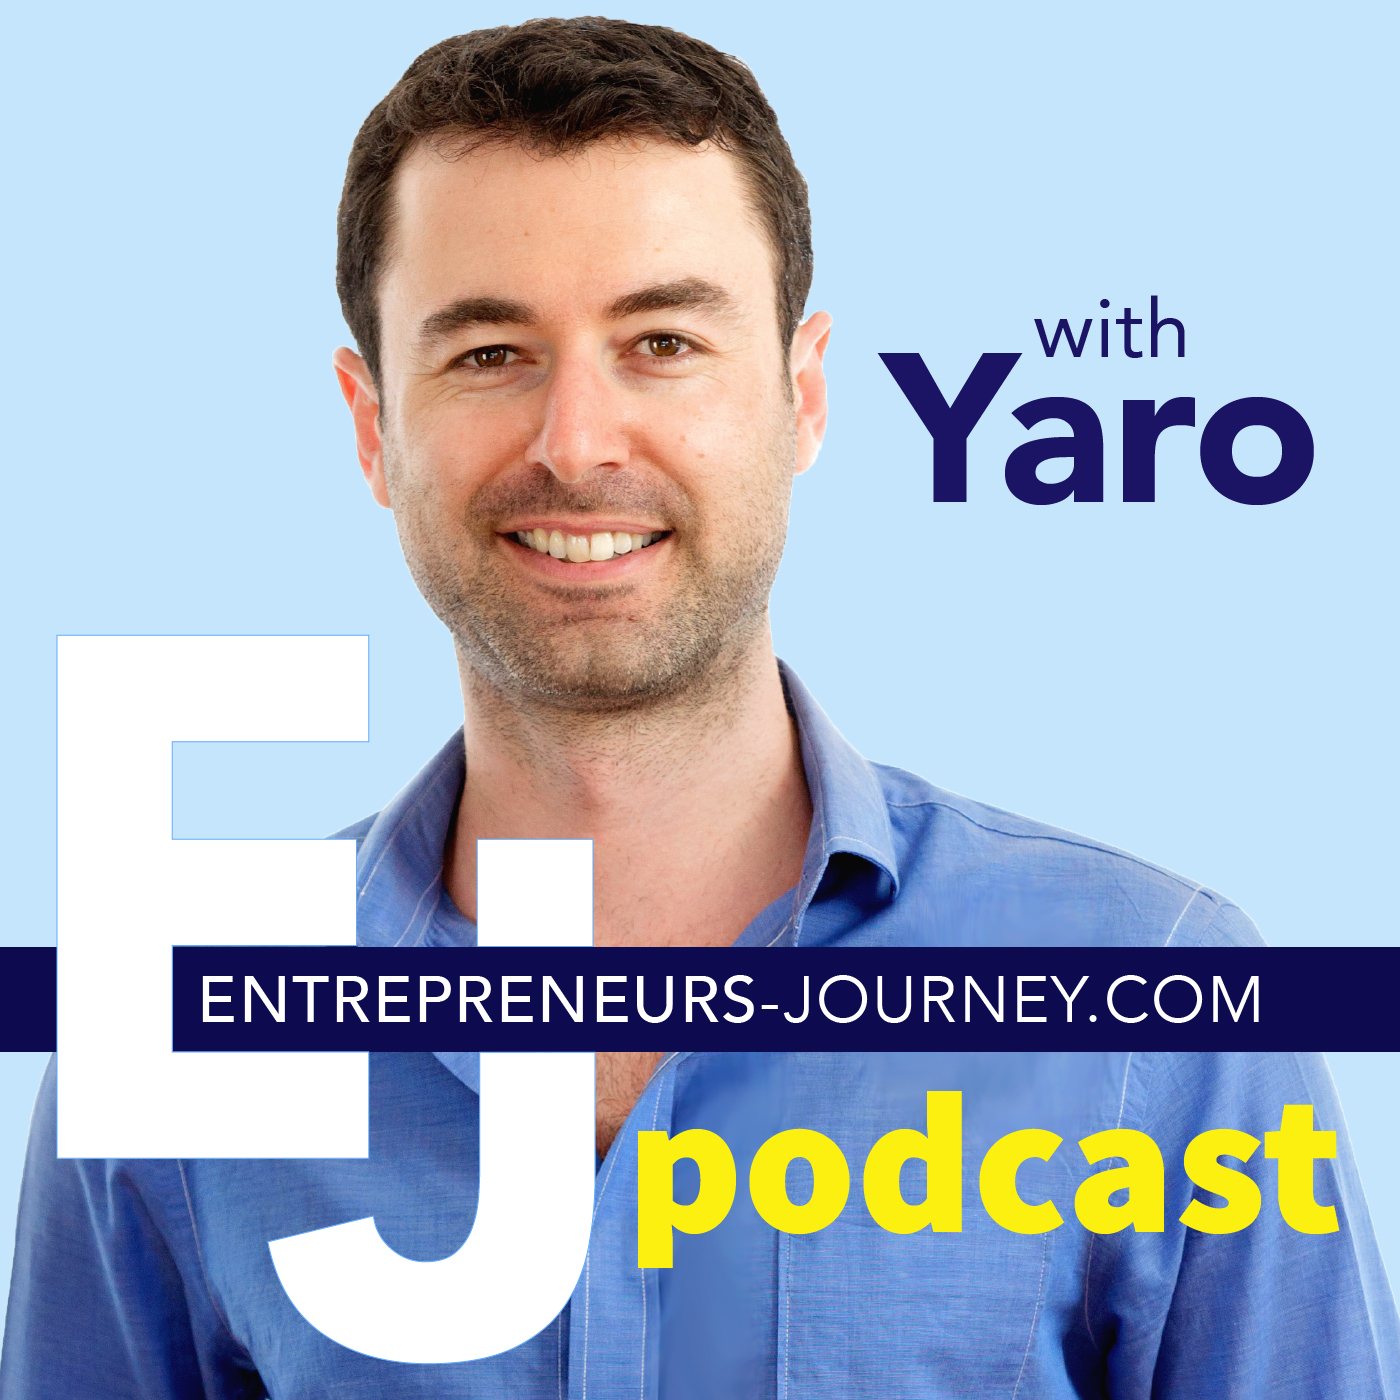 Entrepreneurs-Journey.com Podcast By Yaro